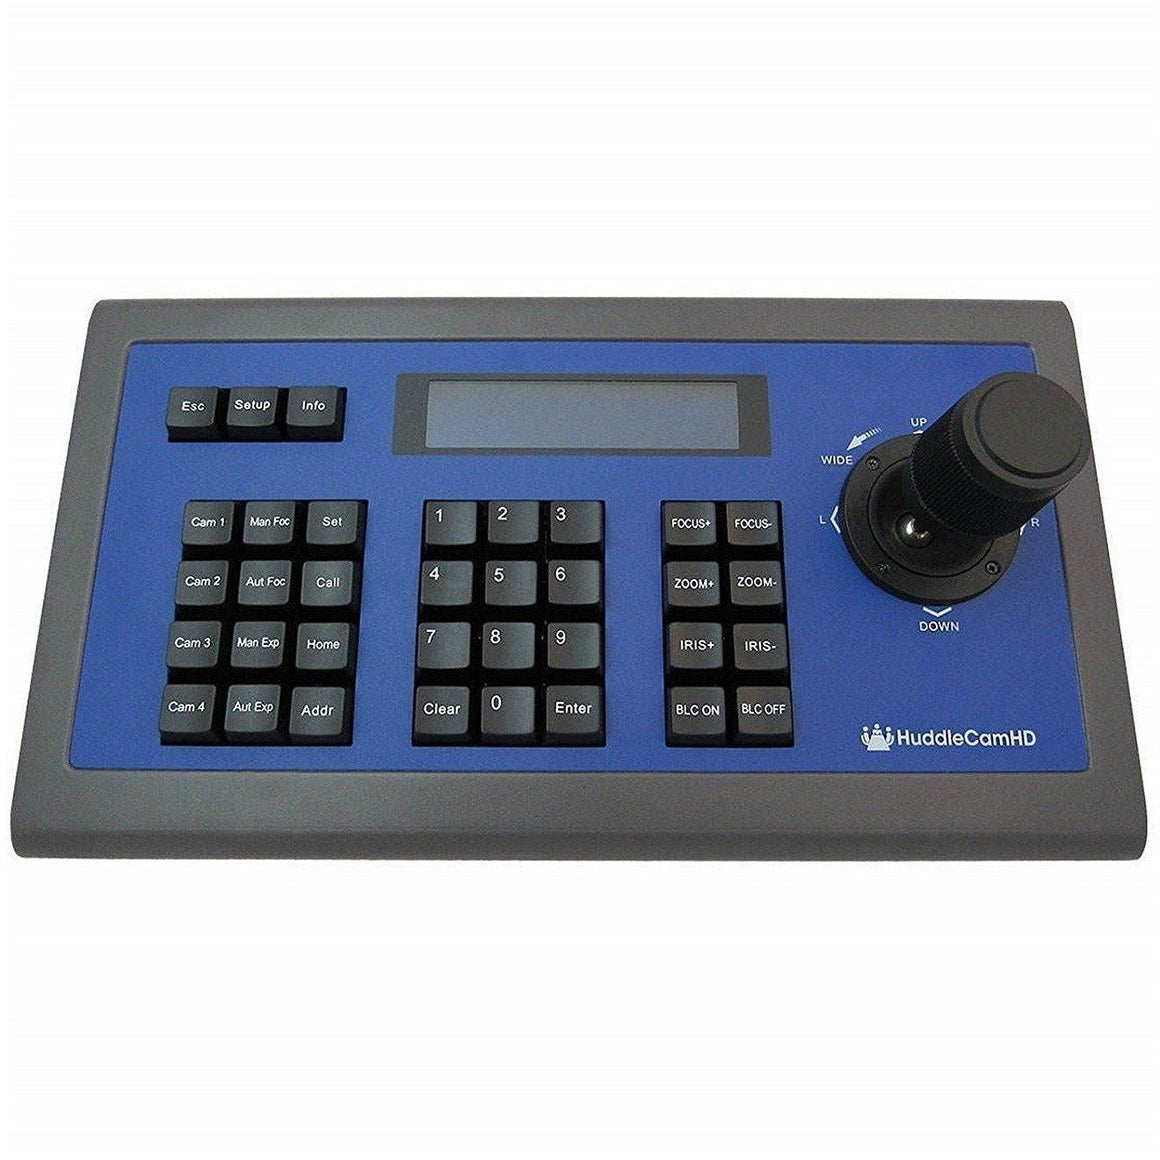 HuddleCamHD Joystick Camera Keyboard Controller